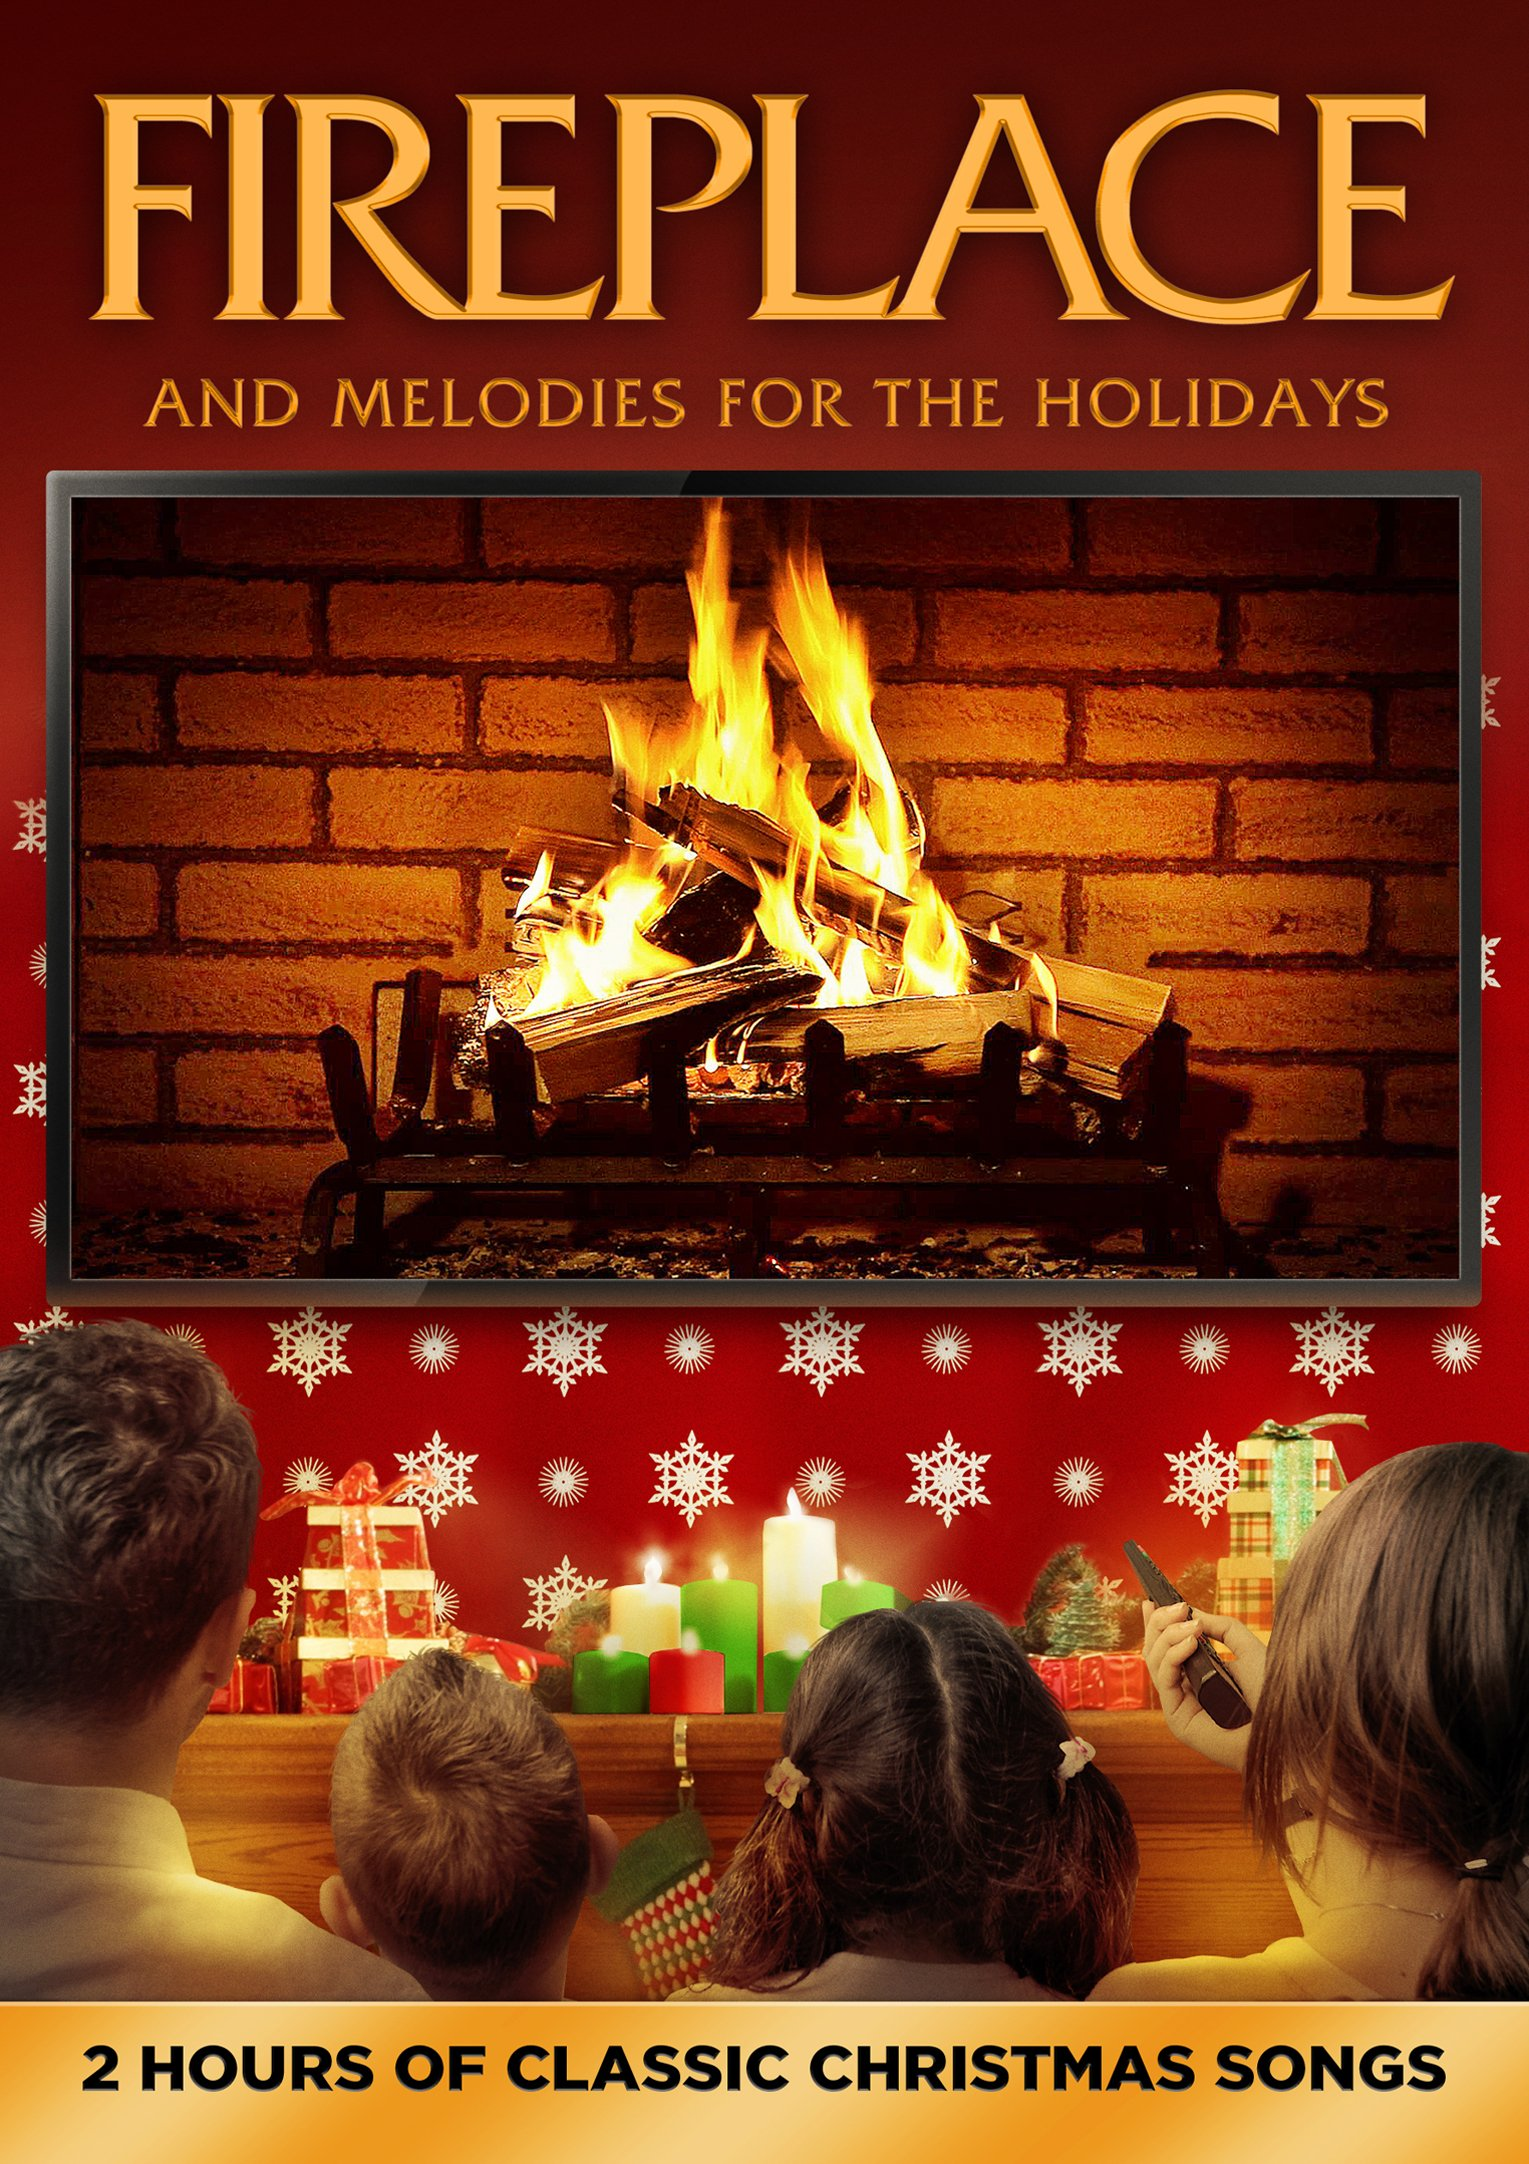 Fireplace and Melodies for the Holidays (Widescreen, Dolby, AC-3)